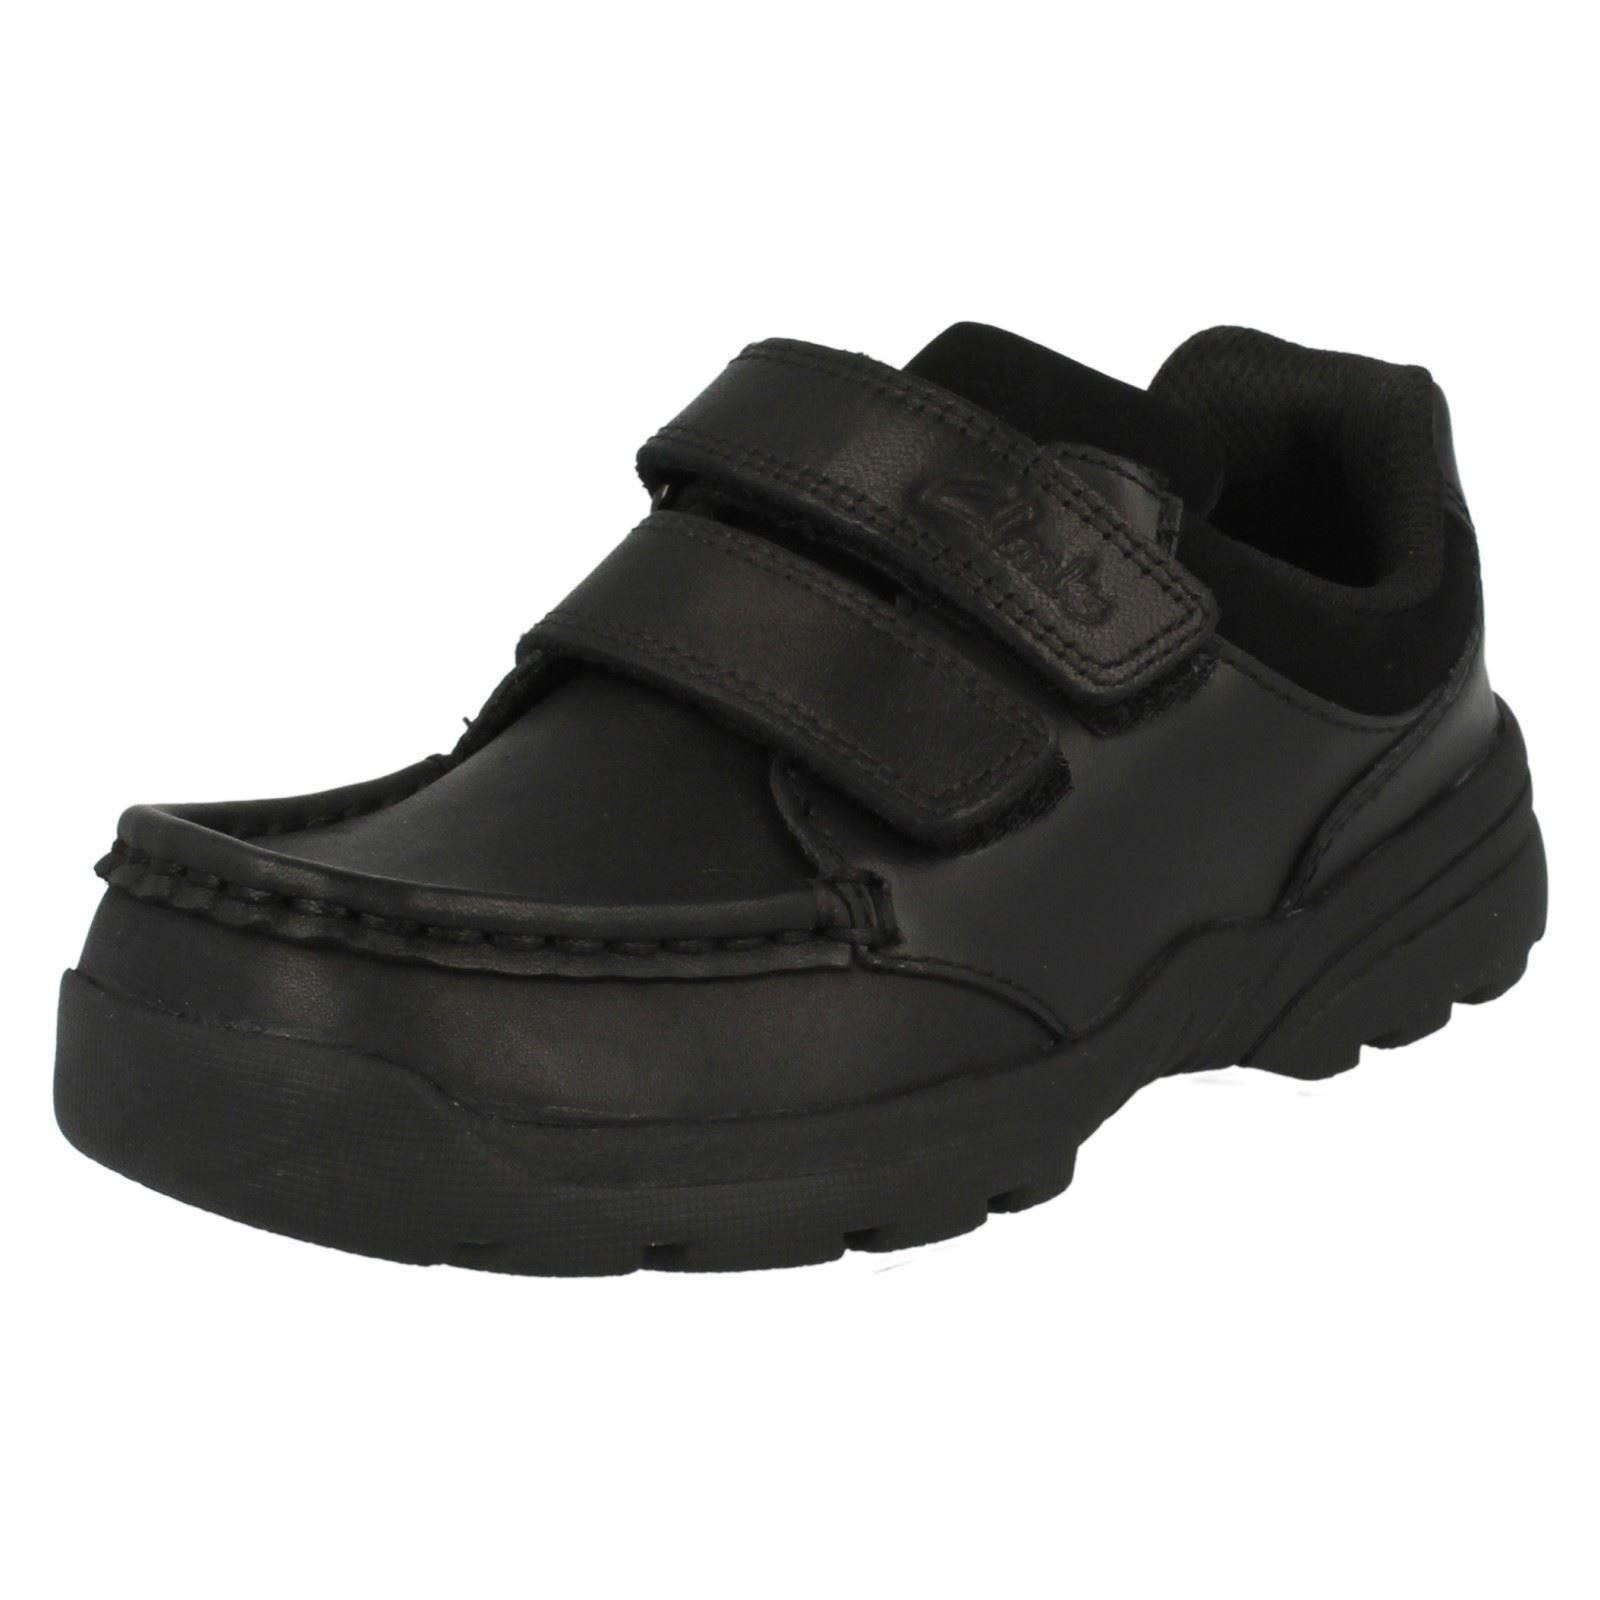 Boys-Clarks-School-Shoes-039-Zayden-Go-039